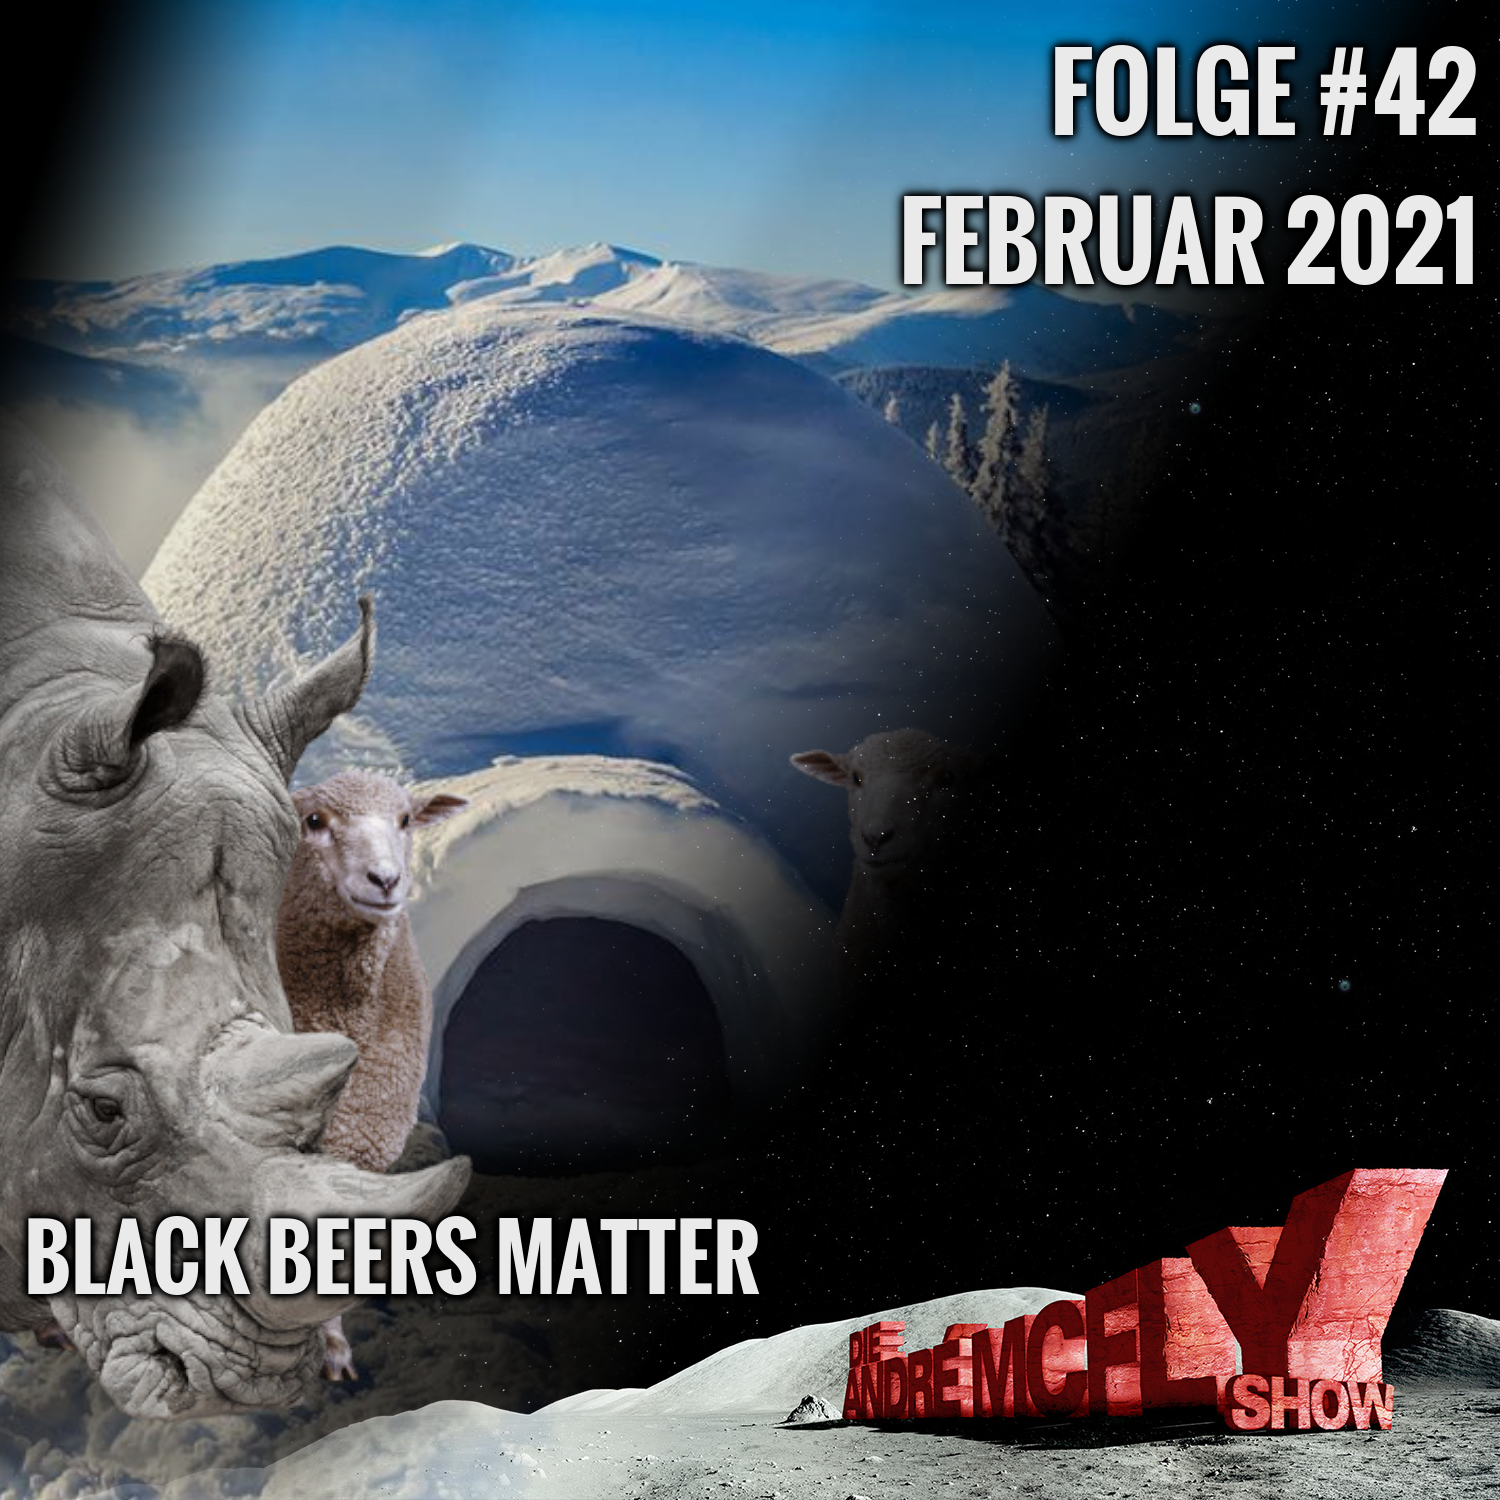 Die André McFly Show #42 | Black Beers Matter